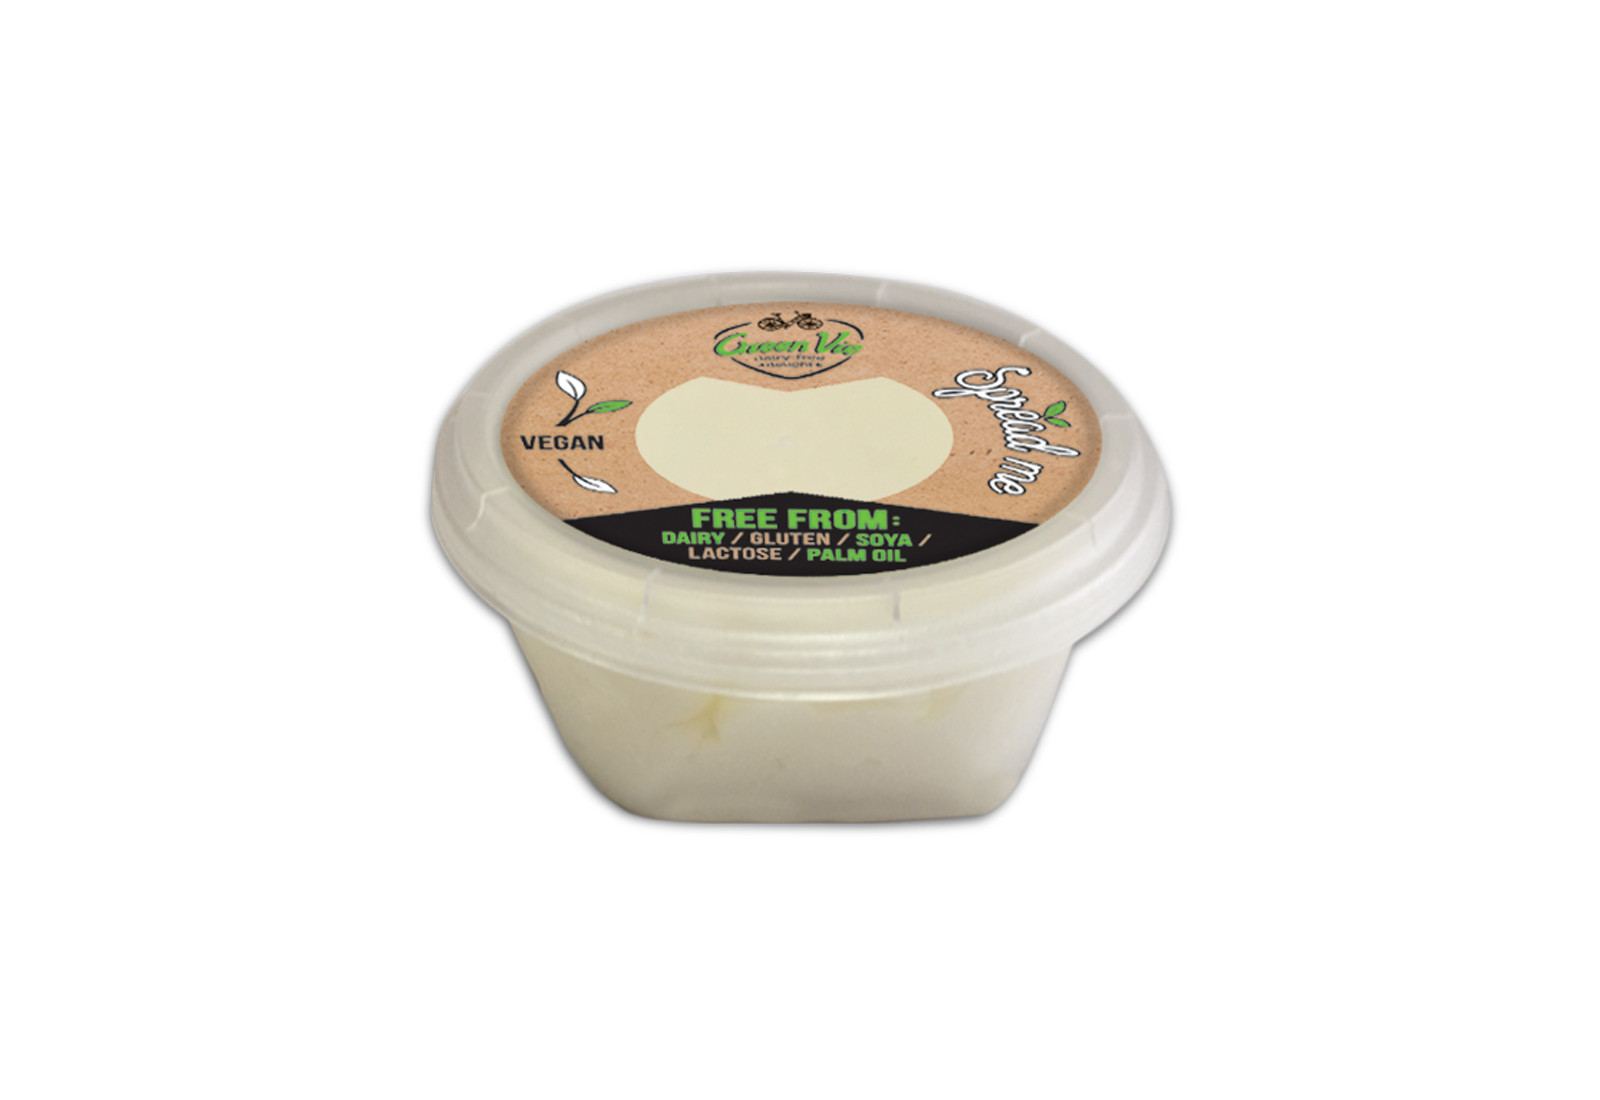 Vegan Dairy-Free GreenVie spread 250g